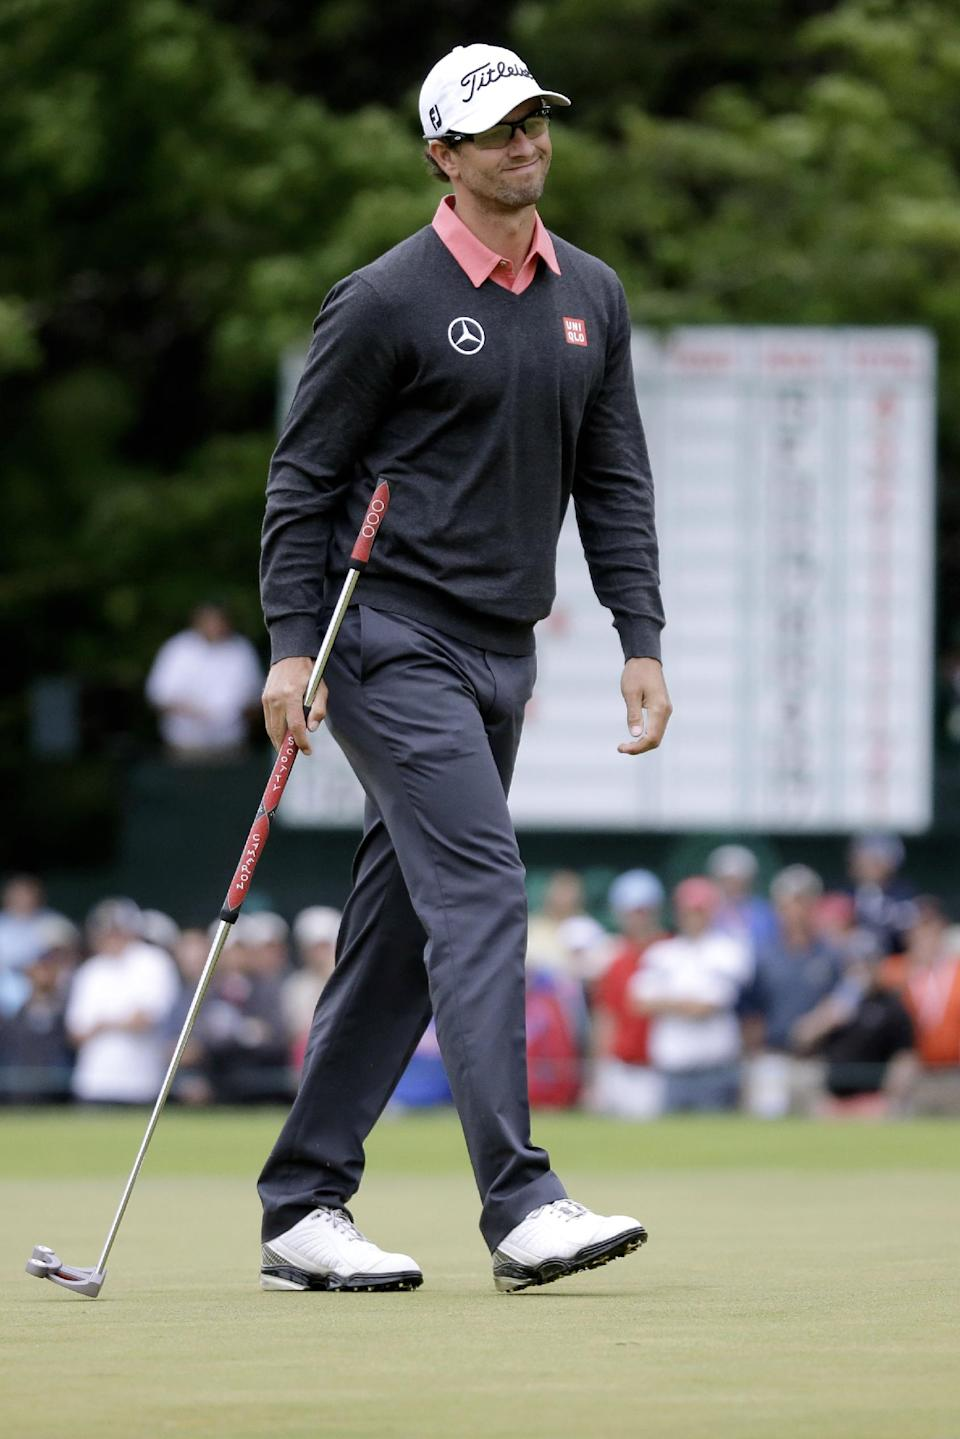 Adam Scott, of Australia, reacts after putting on the 14th hole during the first round of the U.S. Open golf tournament at Merion Golf Club, Friday, June 14, 2013, in Ardmore, Pa. (AP Photo/Morry Gash)